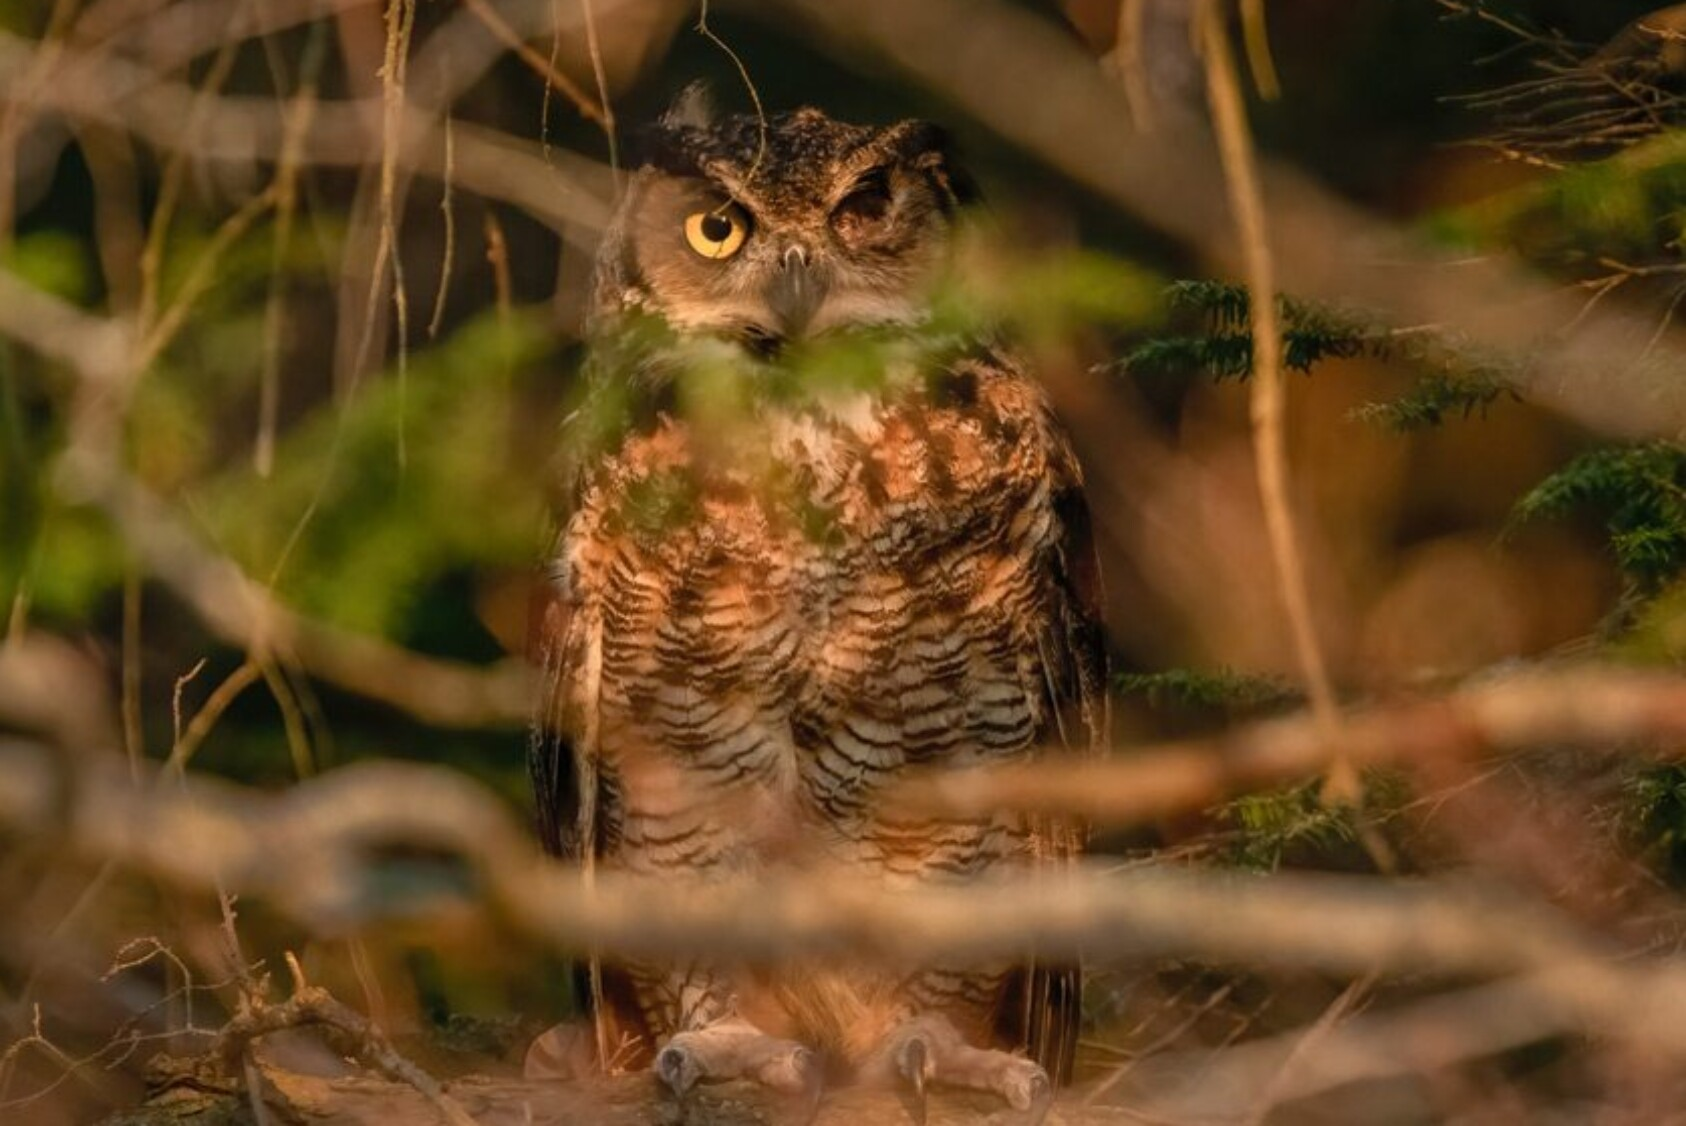 The owl was returned to his home territory after a long hospitalization. Here, he looks out from a thickly wooded area where he landed after being released from the transport carrier.